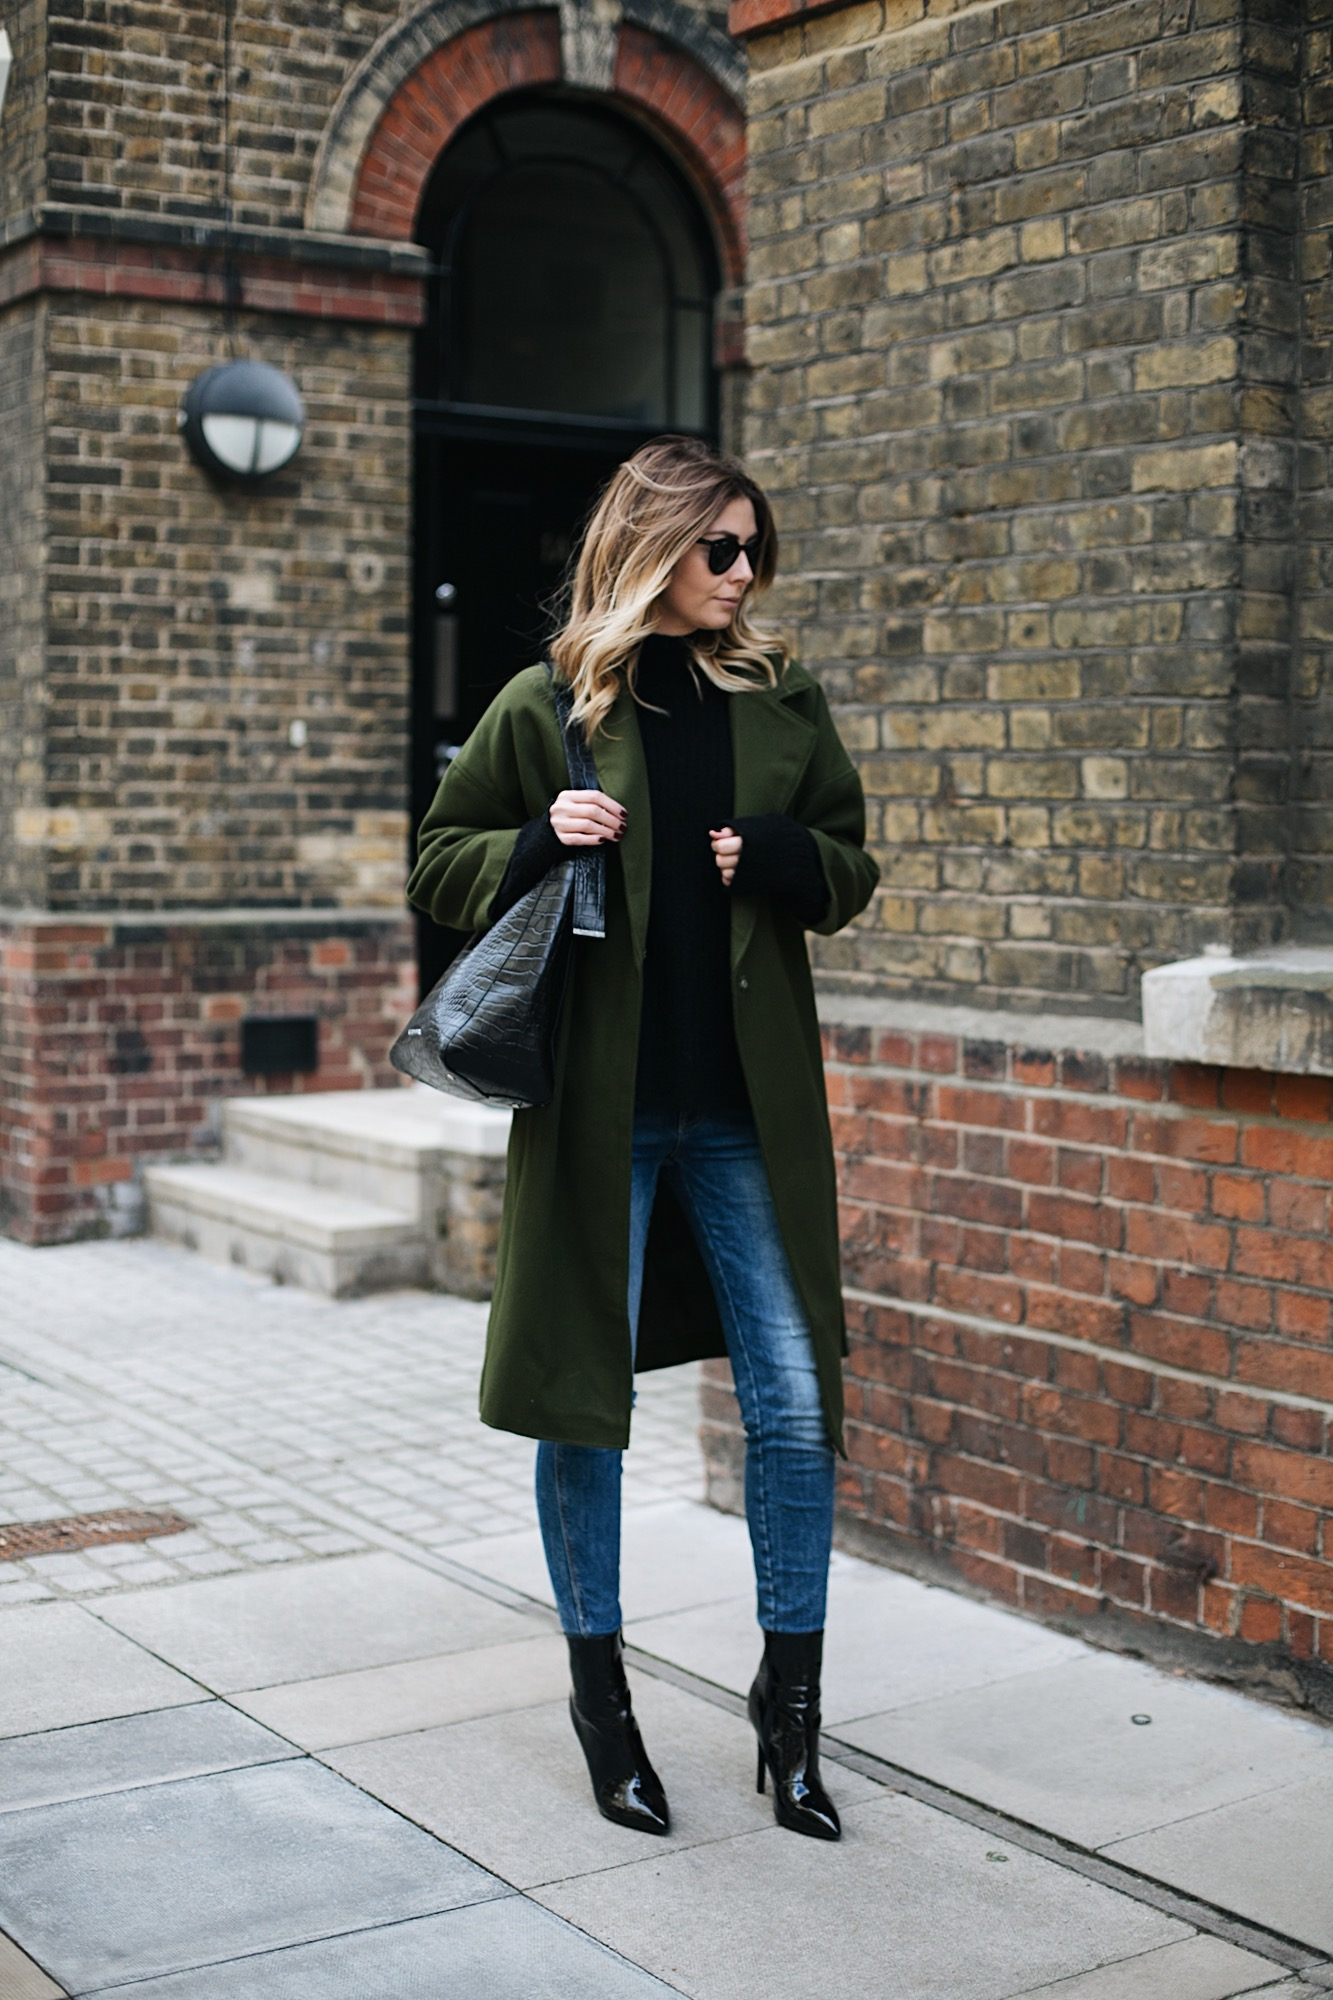 Emma Hill wears khaki coat, black sweater, ripped skinny jeans, black vinyl patent heeled ankle boots, large black croc bag, chic winter outfit